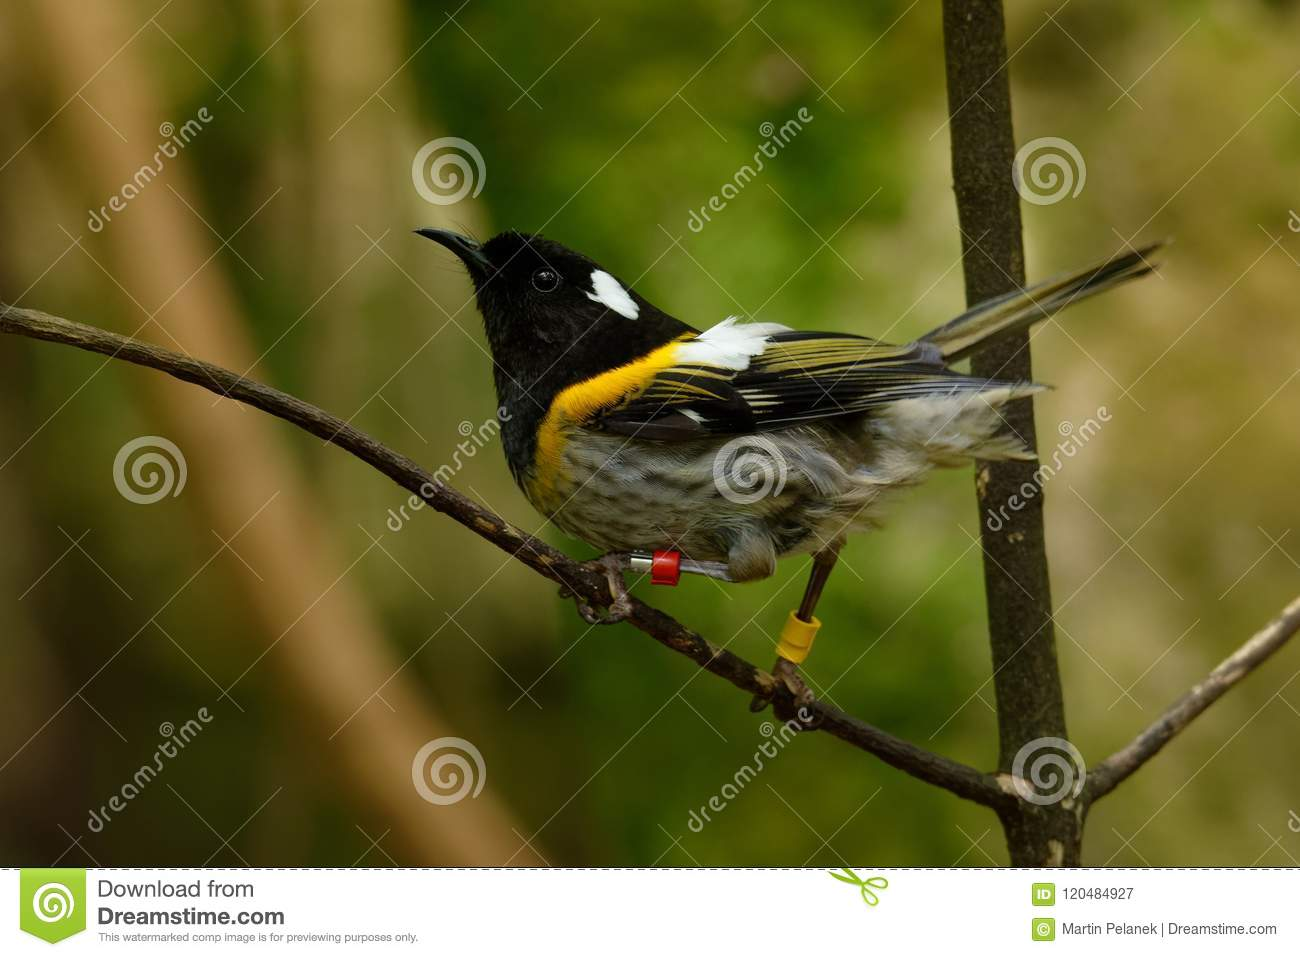 Stitchbird - Notiomystis cincta - Hihi in Maori language, endemic bird sitting on the branch in the New Zealand forest